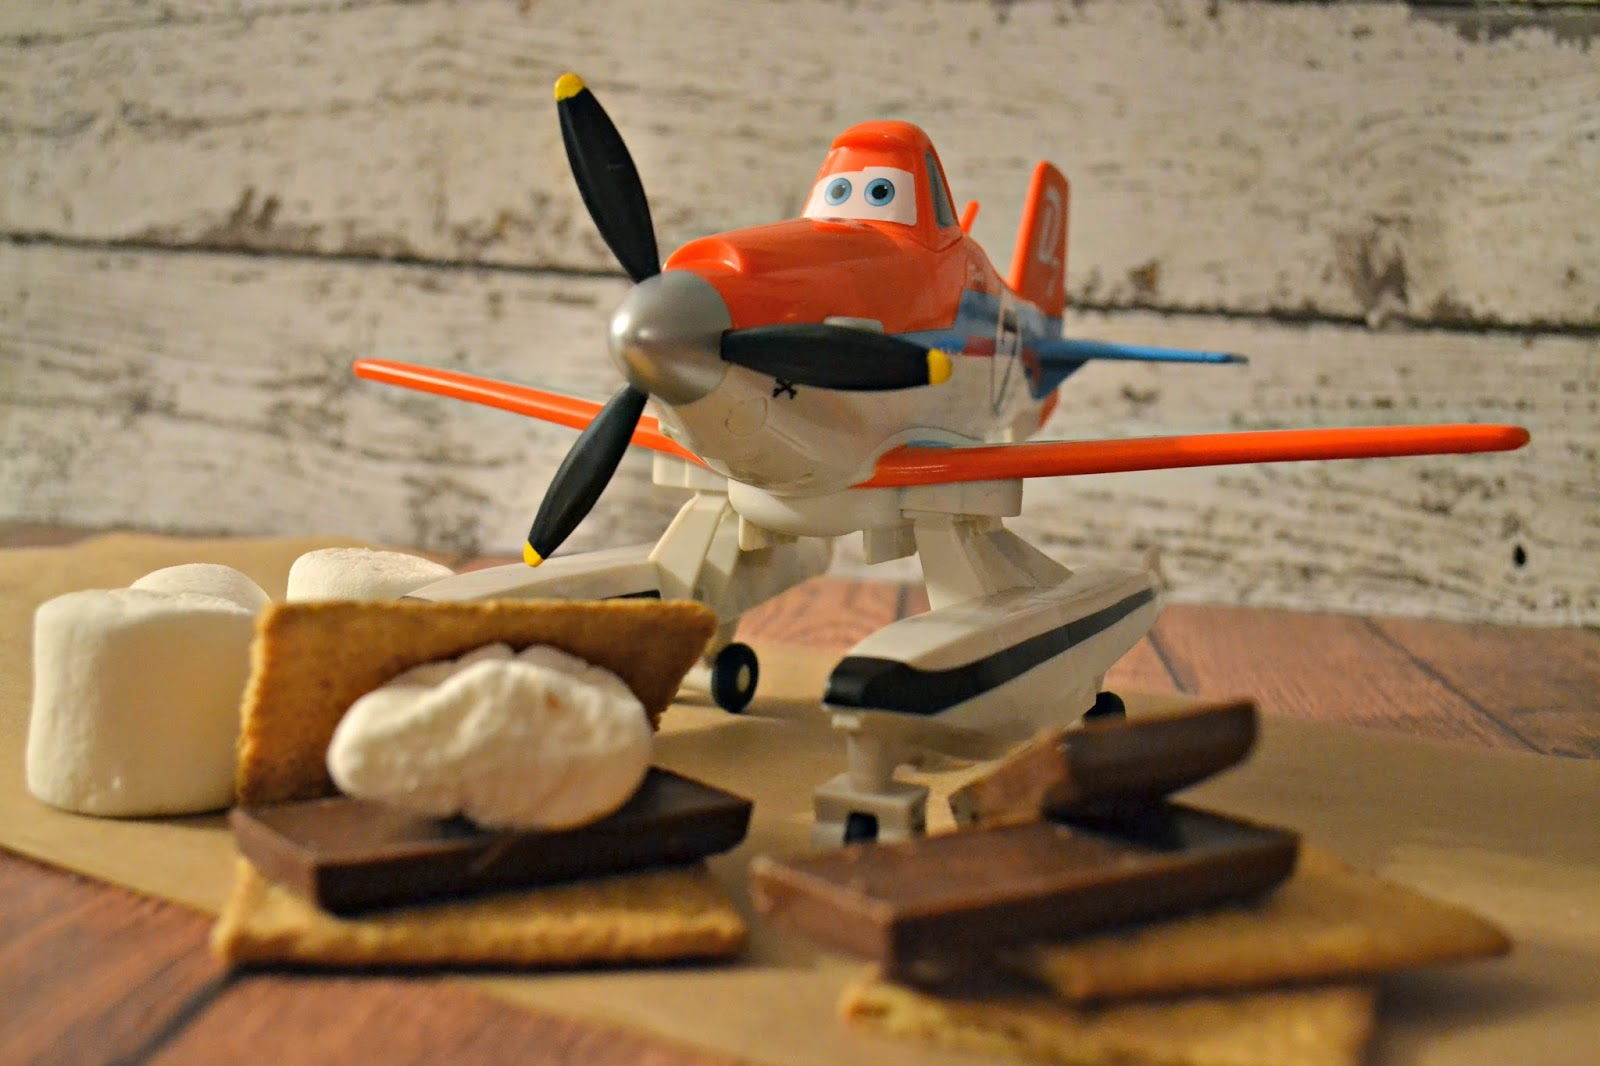 Planes Planes Movie Disney Planes Planes the Movie Planes Characters Disney Planes Dusty Courage Disney Values DIY S'mores Kit.  S'mores kit printable